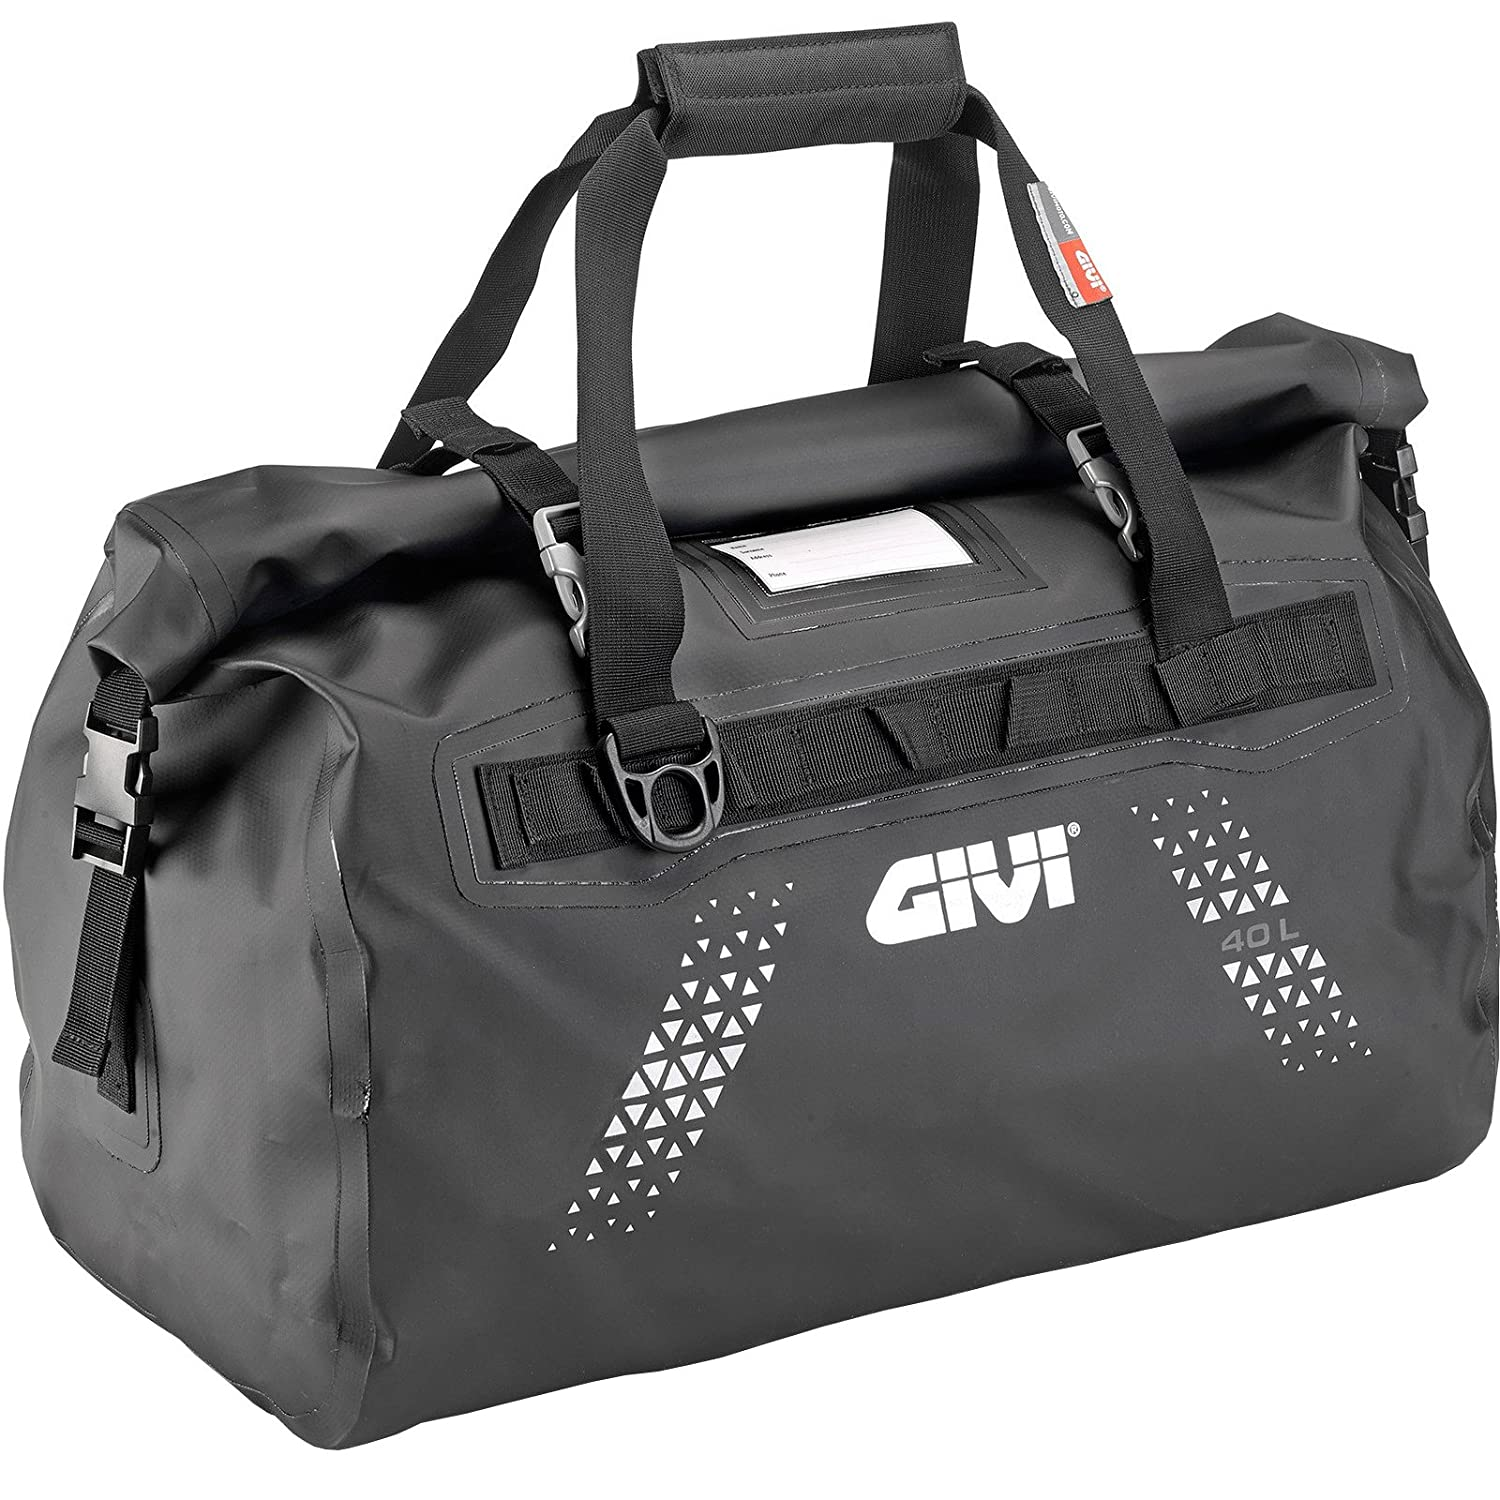 30d9ed1020 Amazon.com  Givi Ultima-T Waterproof 40 Liter Waterproof Bag UT803   Automotive